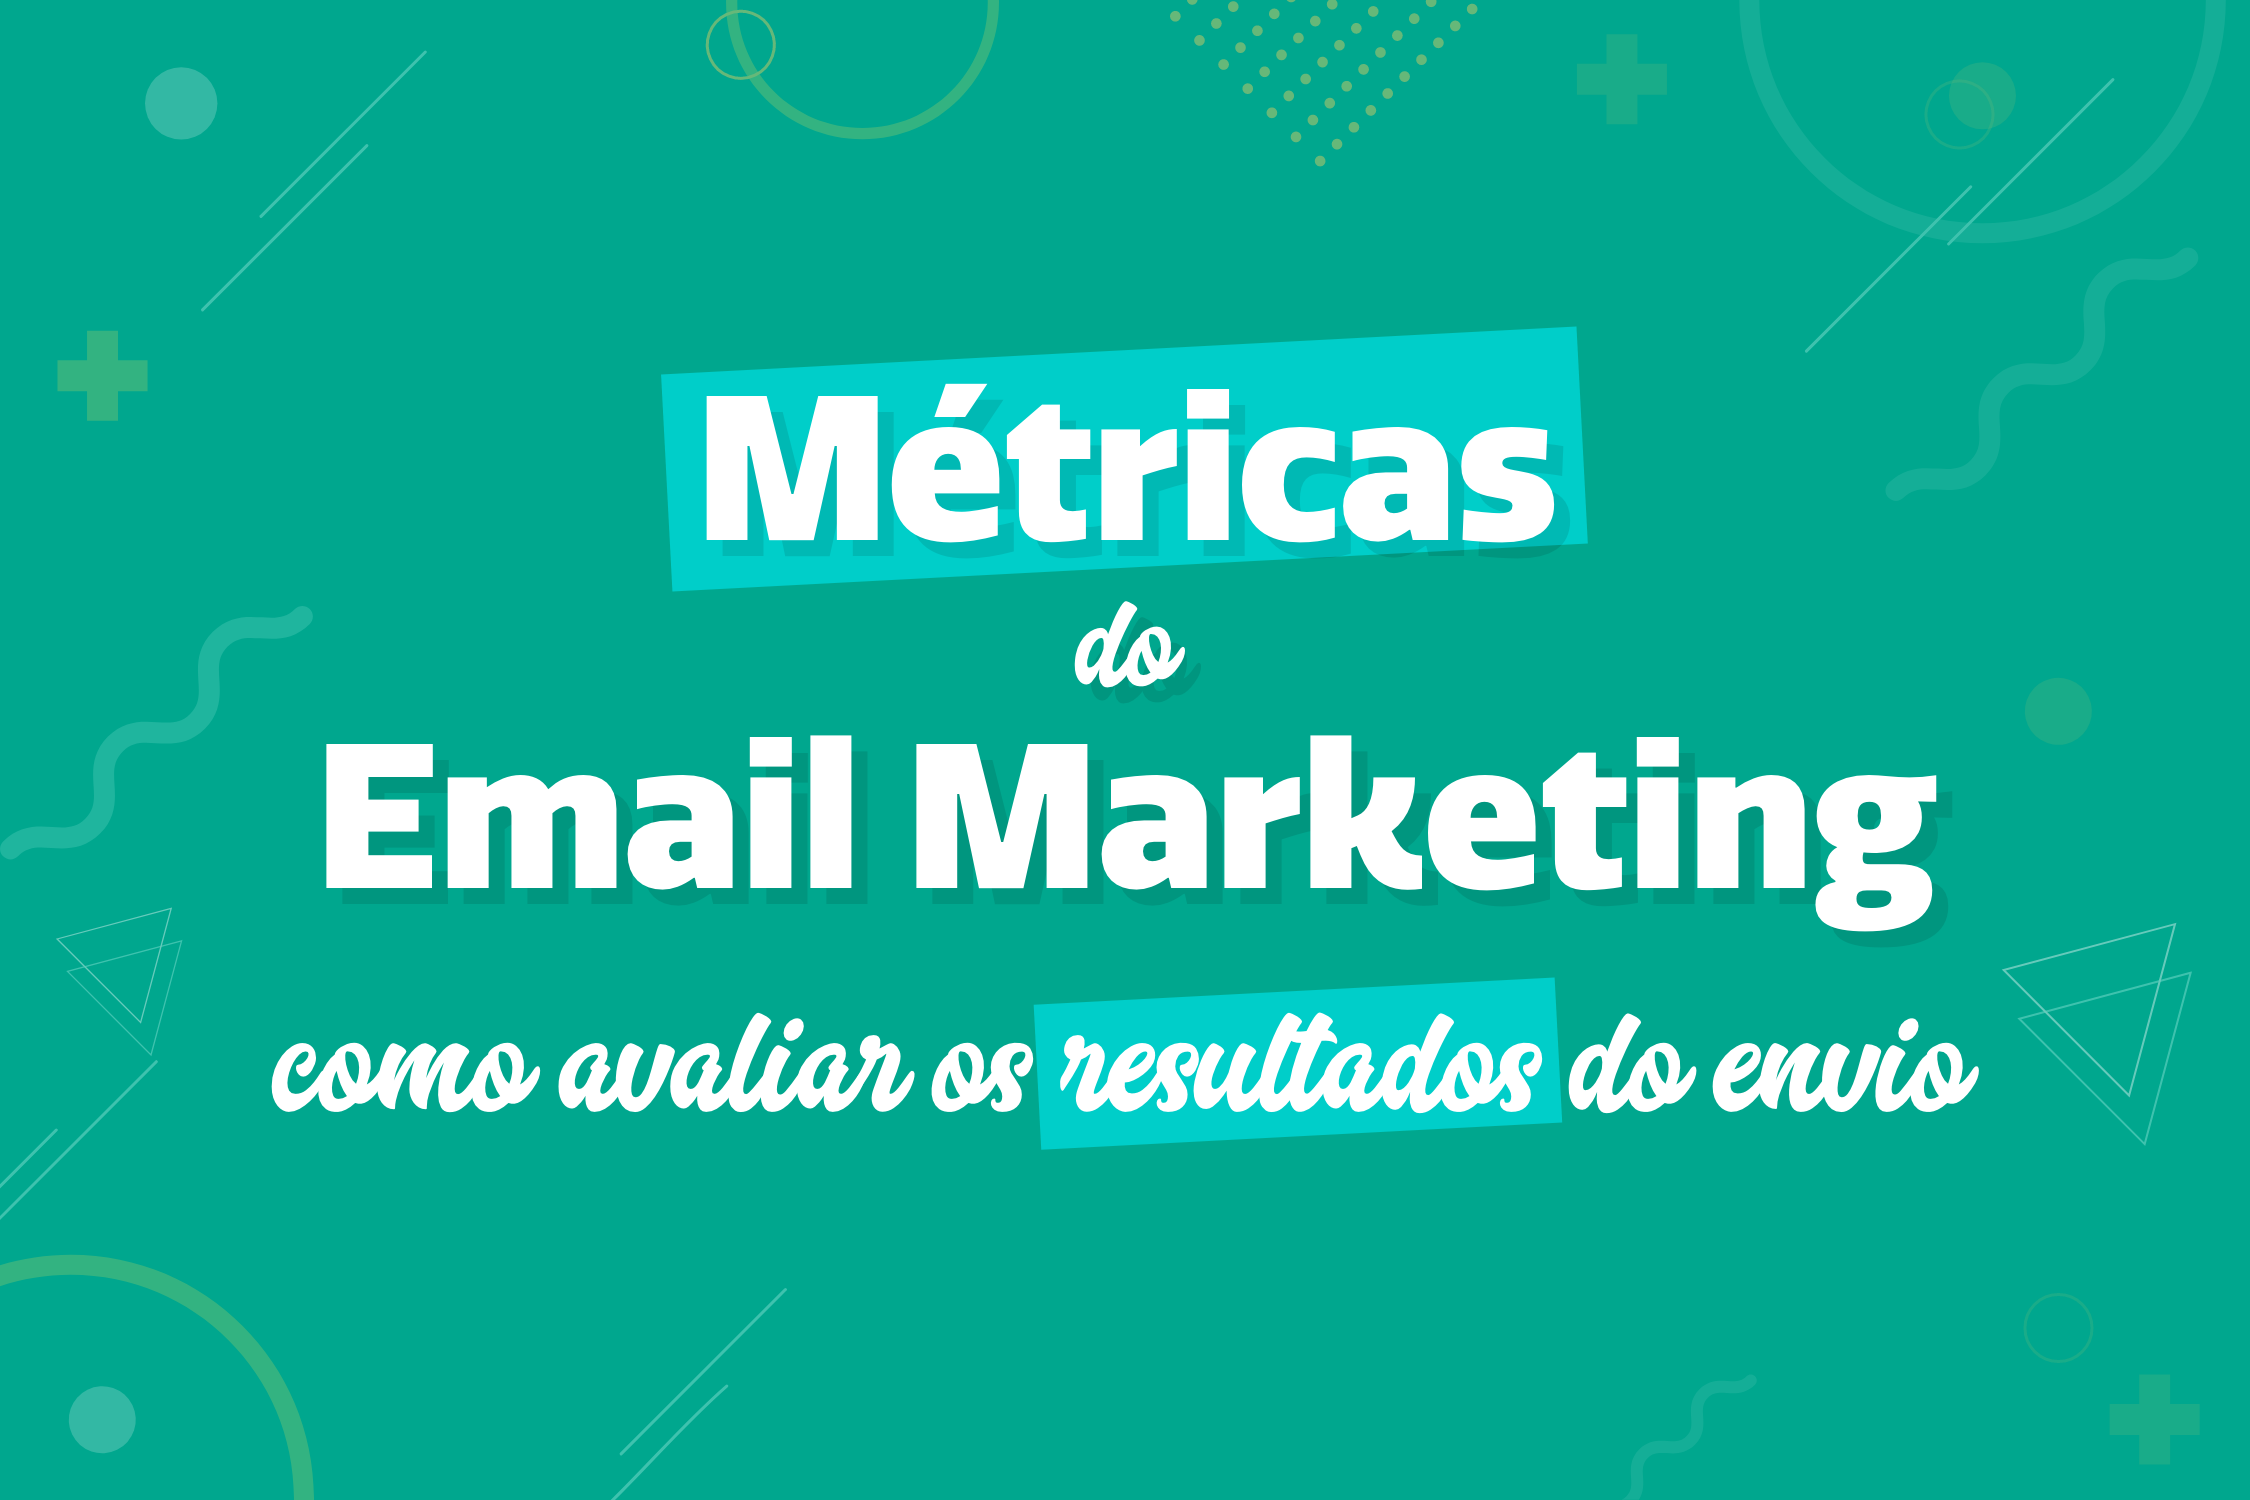 Métricas do Email Marketing: O Guia Completo